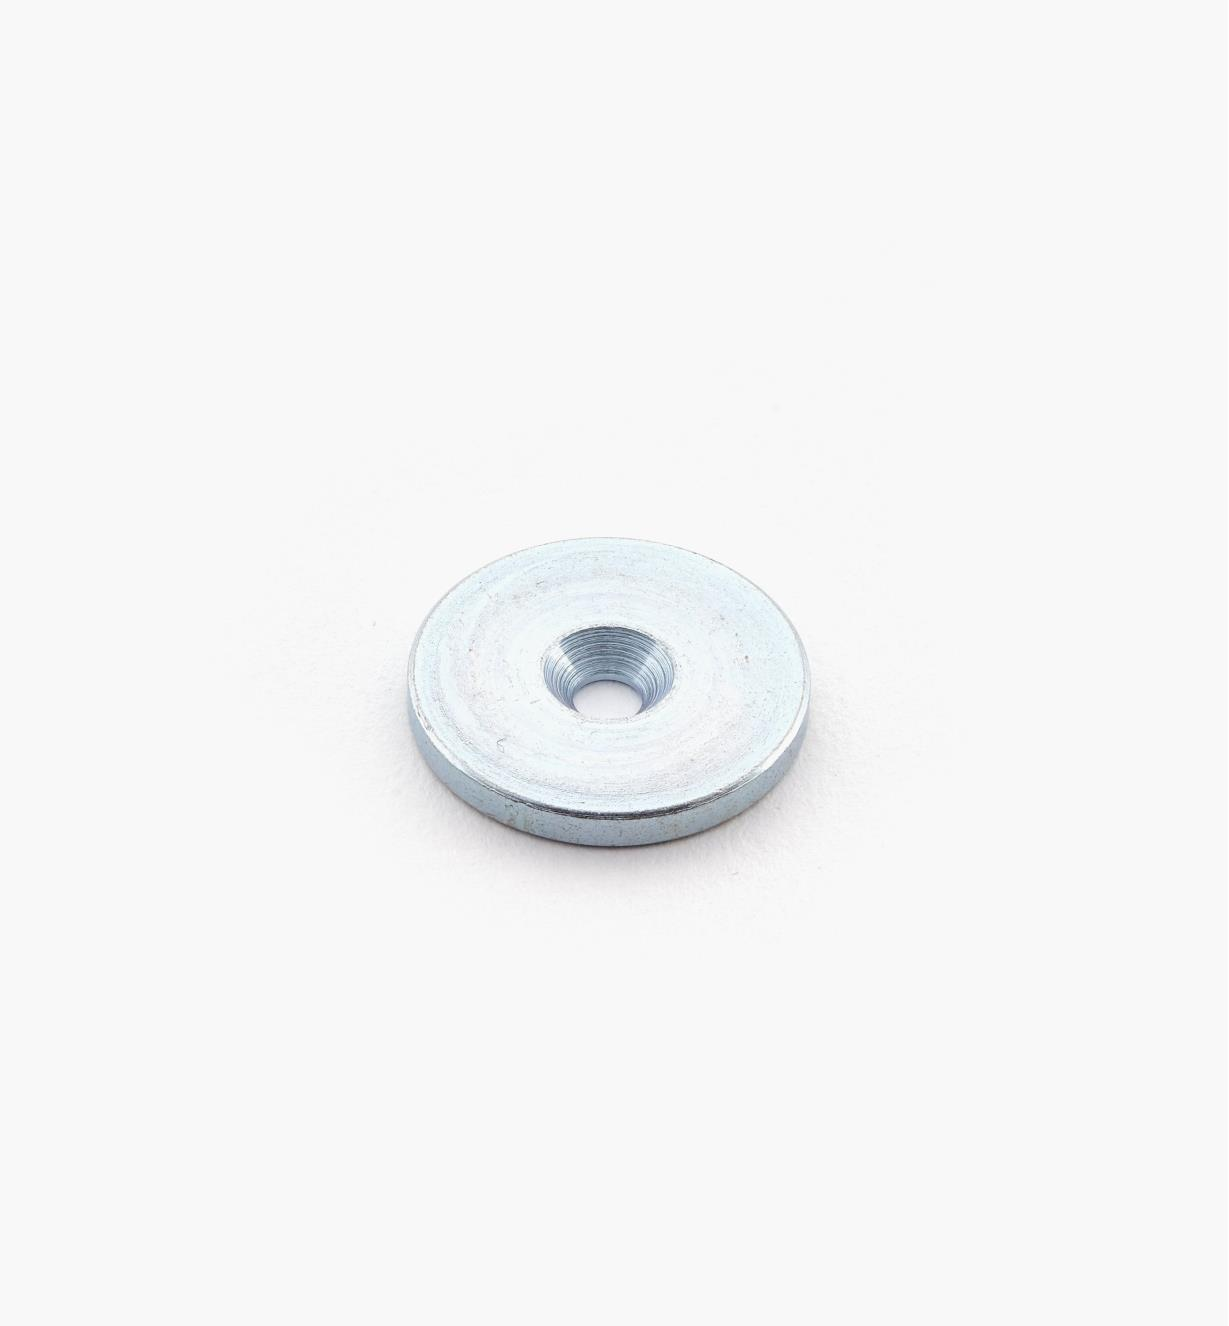 "99K3277 - 3/4"" Washer for 5/8"" Magnet, each"